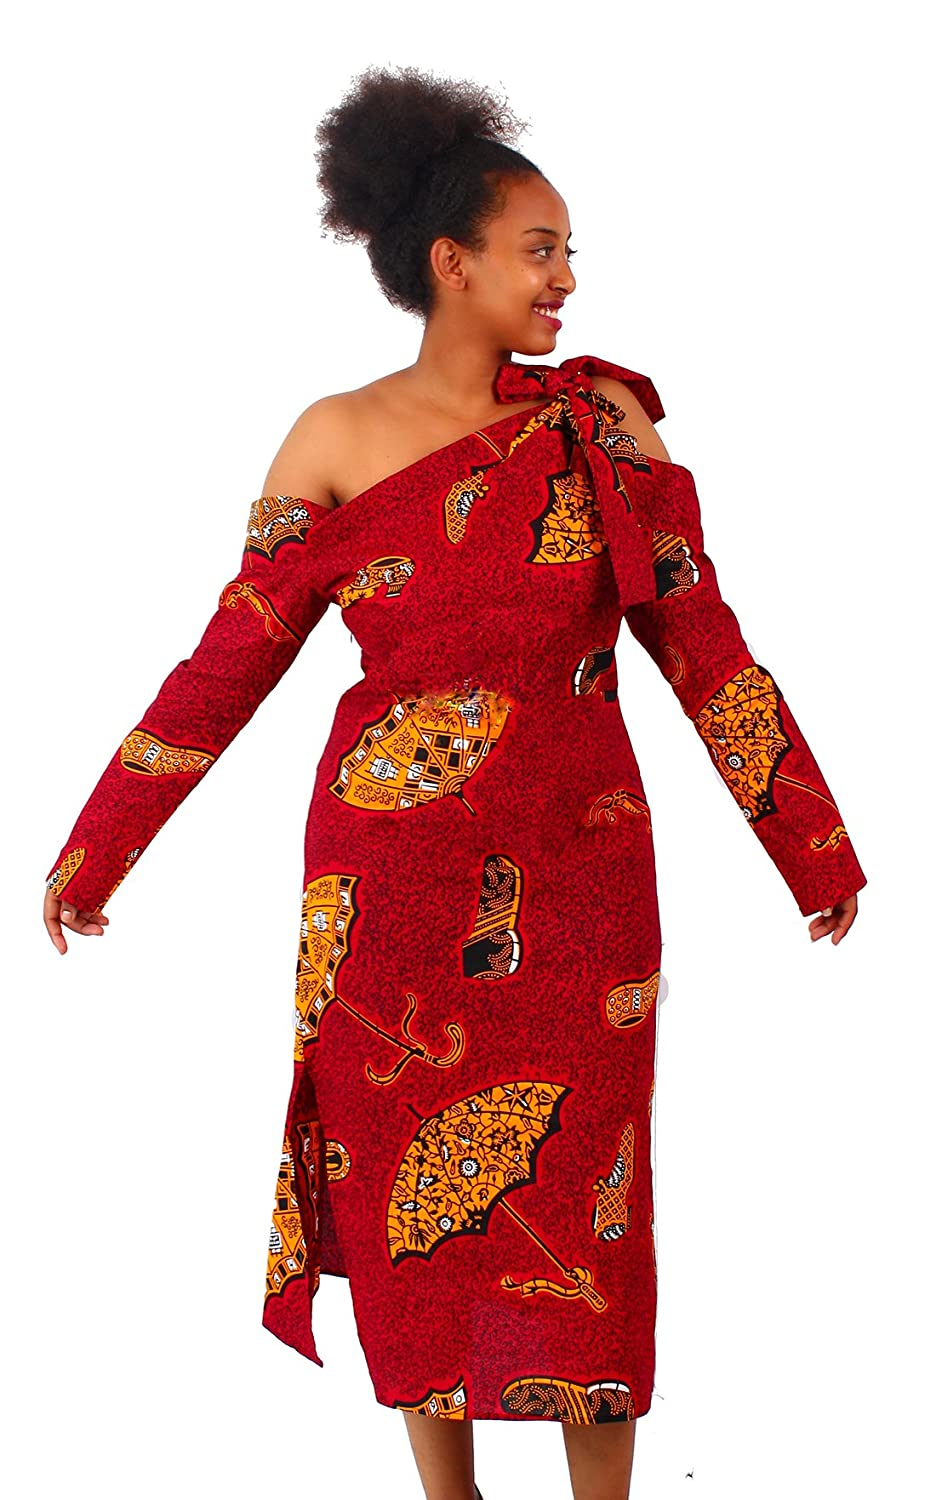 7a325fdb1537 Top 10 wholesale Unique African Clothing - Chinabrands.com